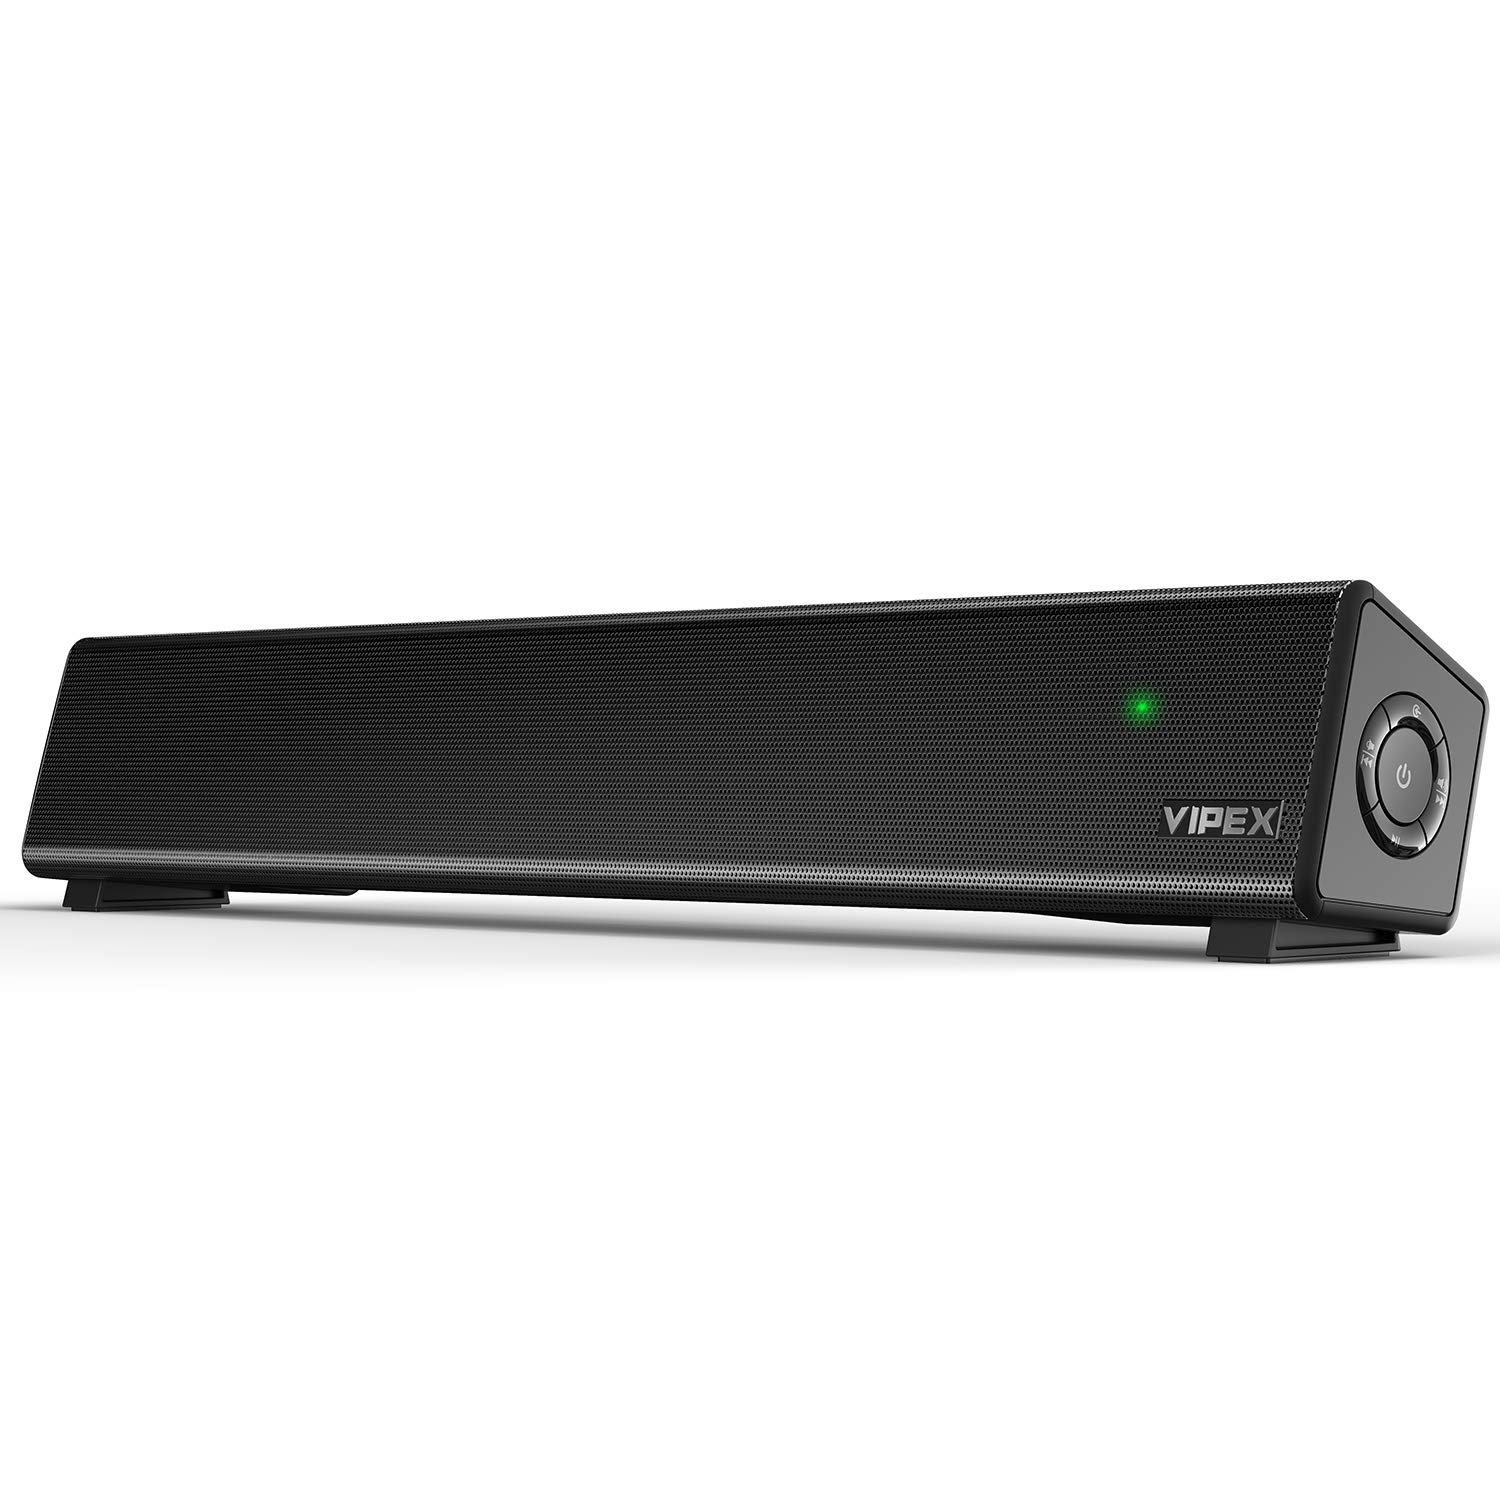 Computer Speakers – Bluetooth 5.0 PC Speakers Sound Bar, 10W Powerful Stereo Small Soundbar Speaker for TV, PC, Smartphone, Tablet and Laptop, Wireless and AUX-in Connection, Wall Mountable